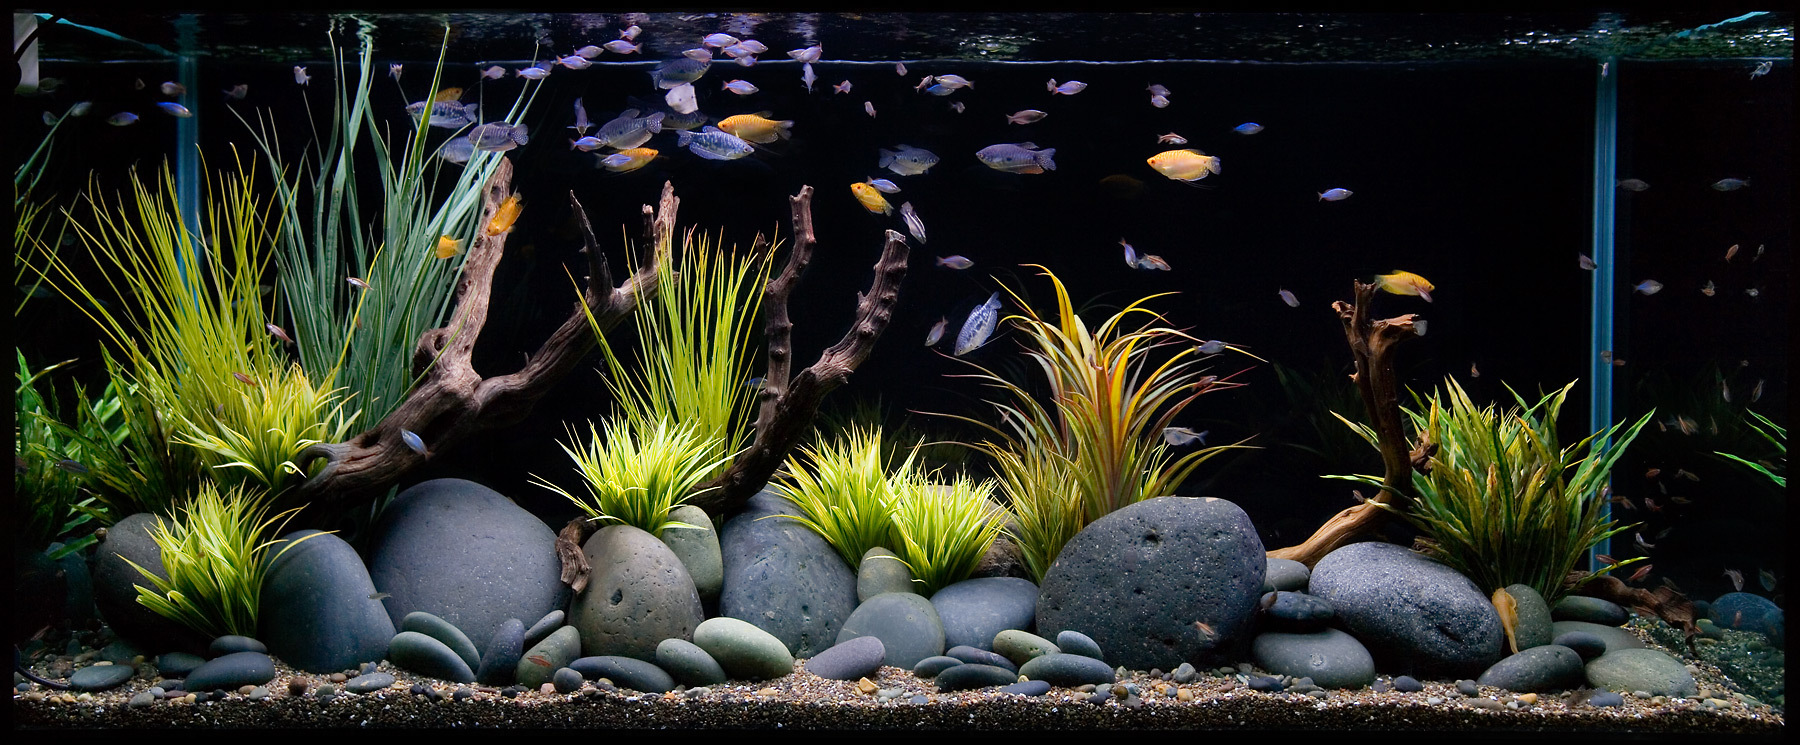 How to set up a fresh water aquarium wishforpets for Exotic fish tanks